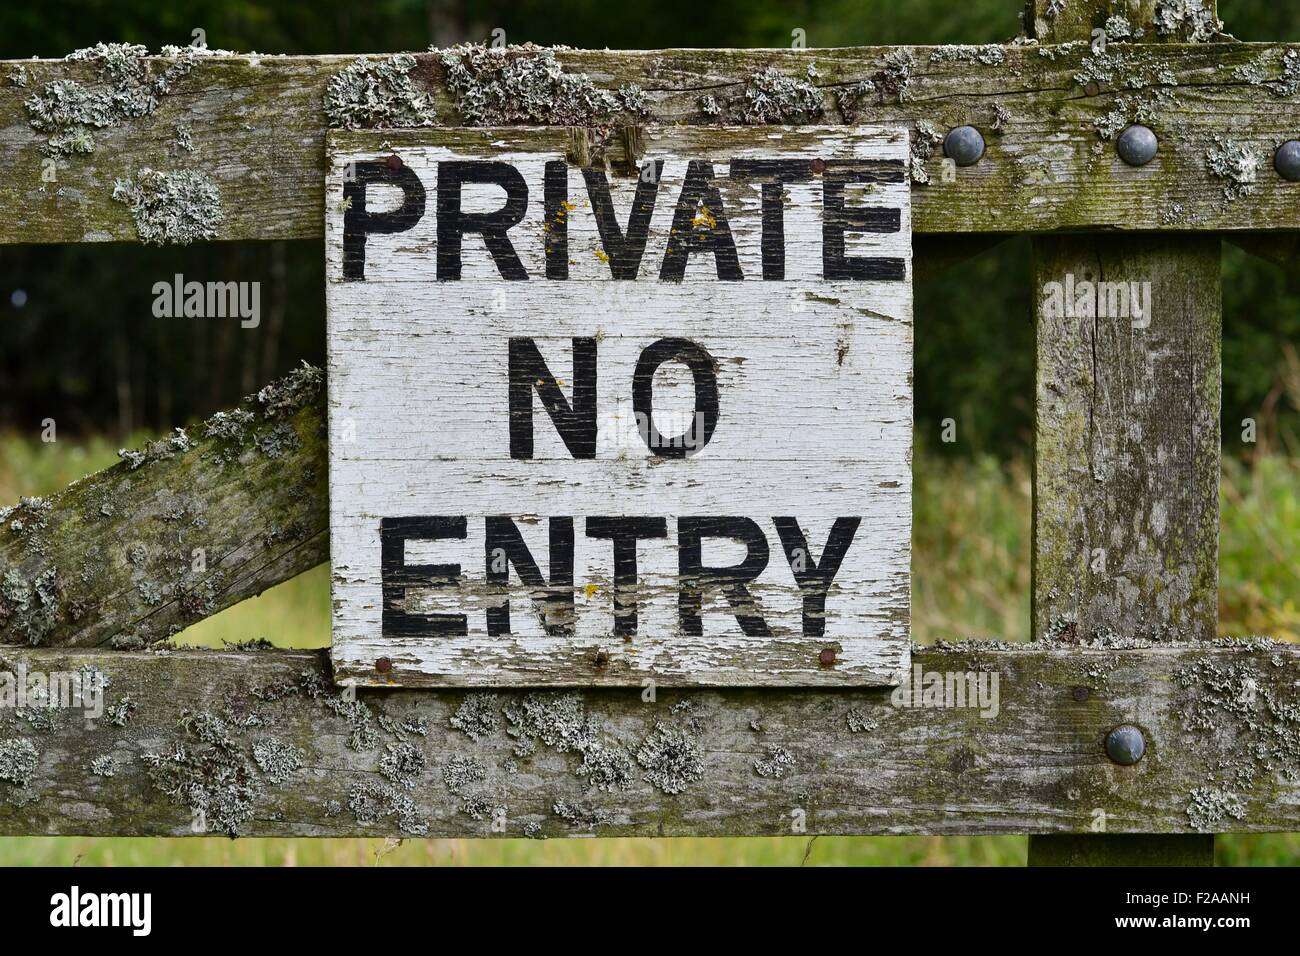 Private No Entry Sign in the countryside - Stock Image